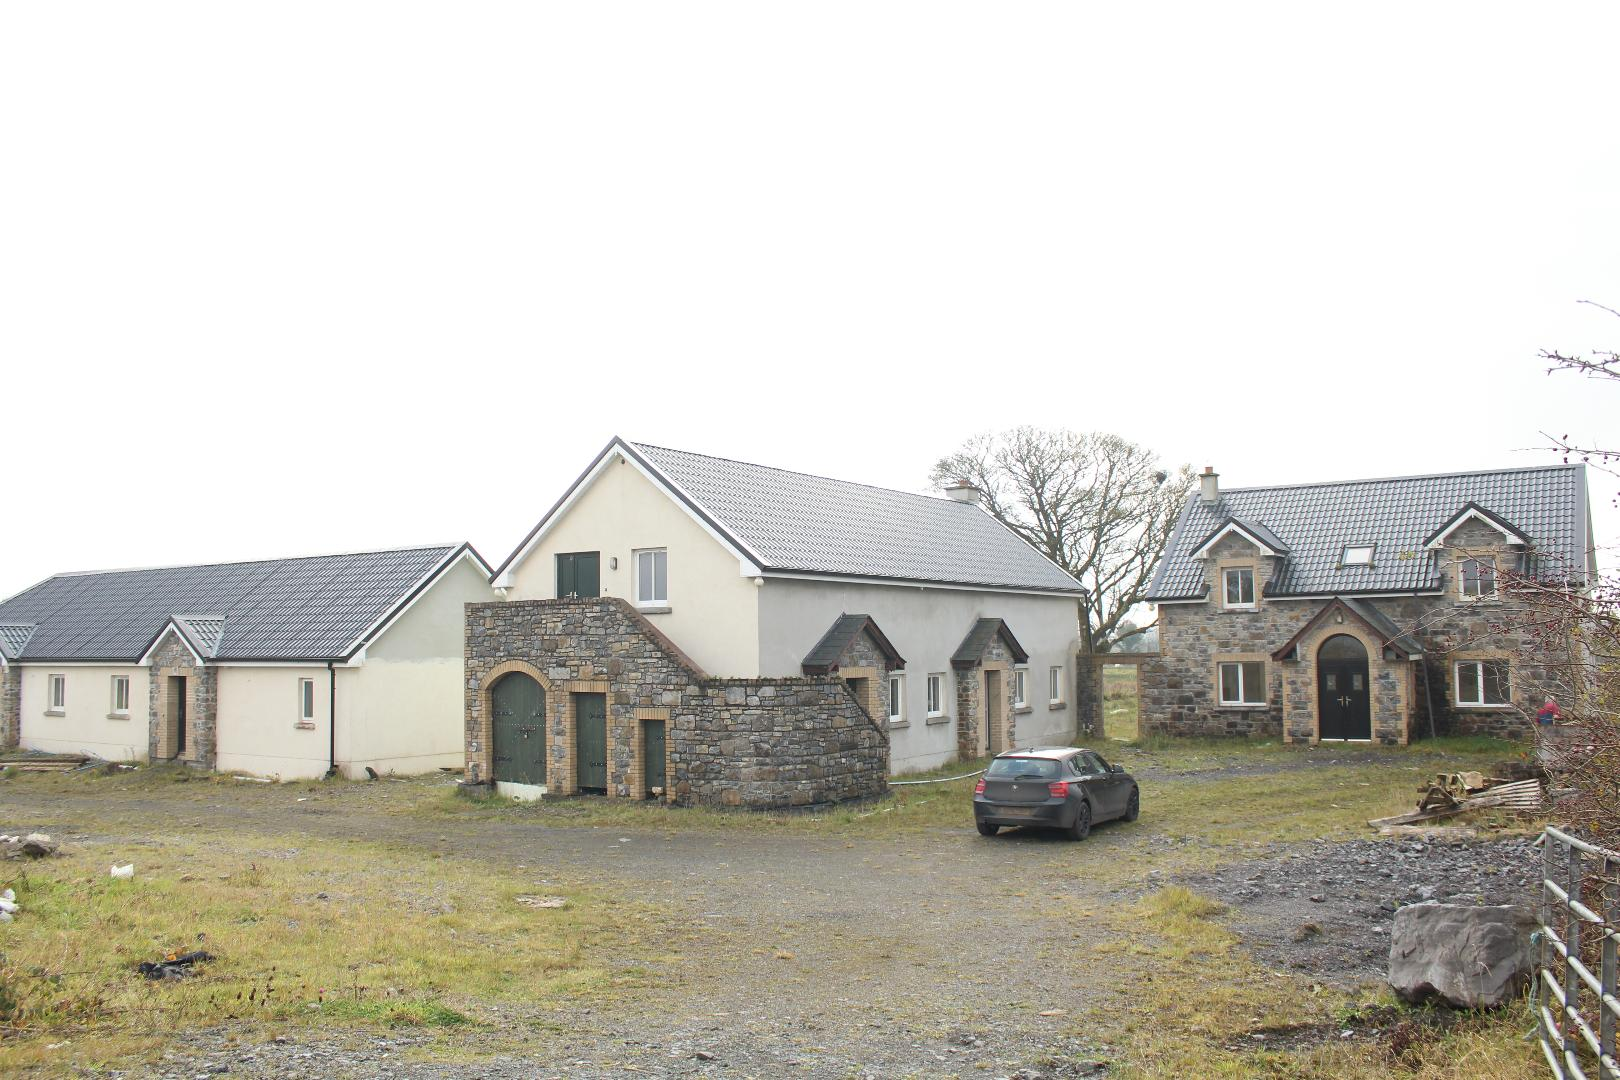 Photo of Plans for new Retreat in Kingsland